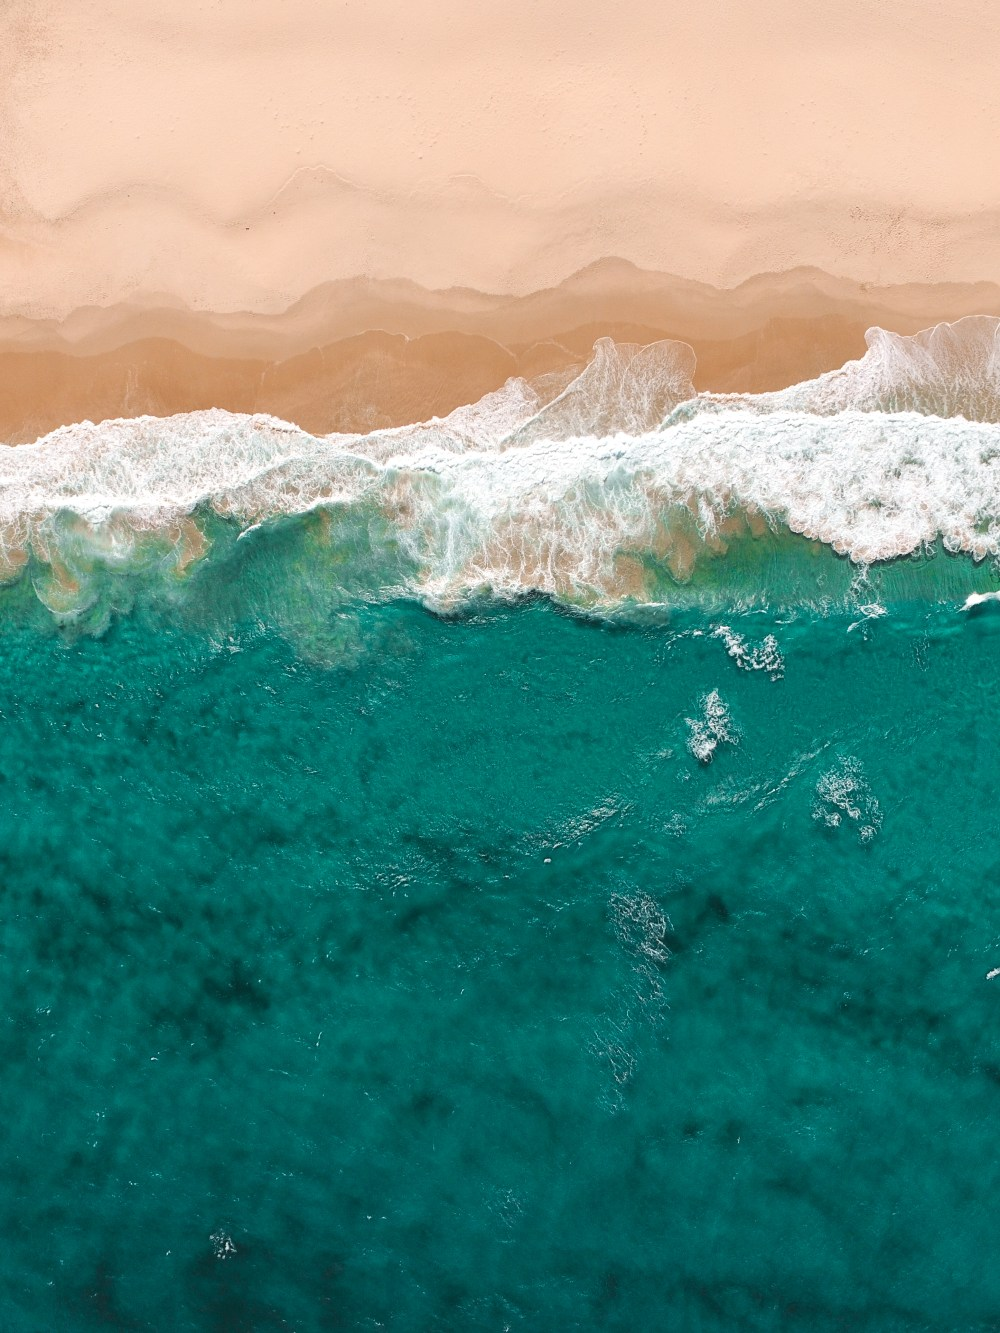 20+ Stunning Ocean Pictures [HQ]   Download Free Images on Unsplash